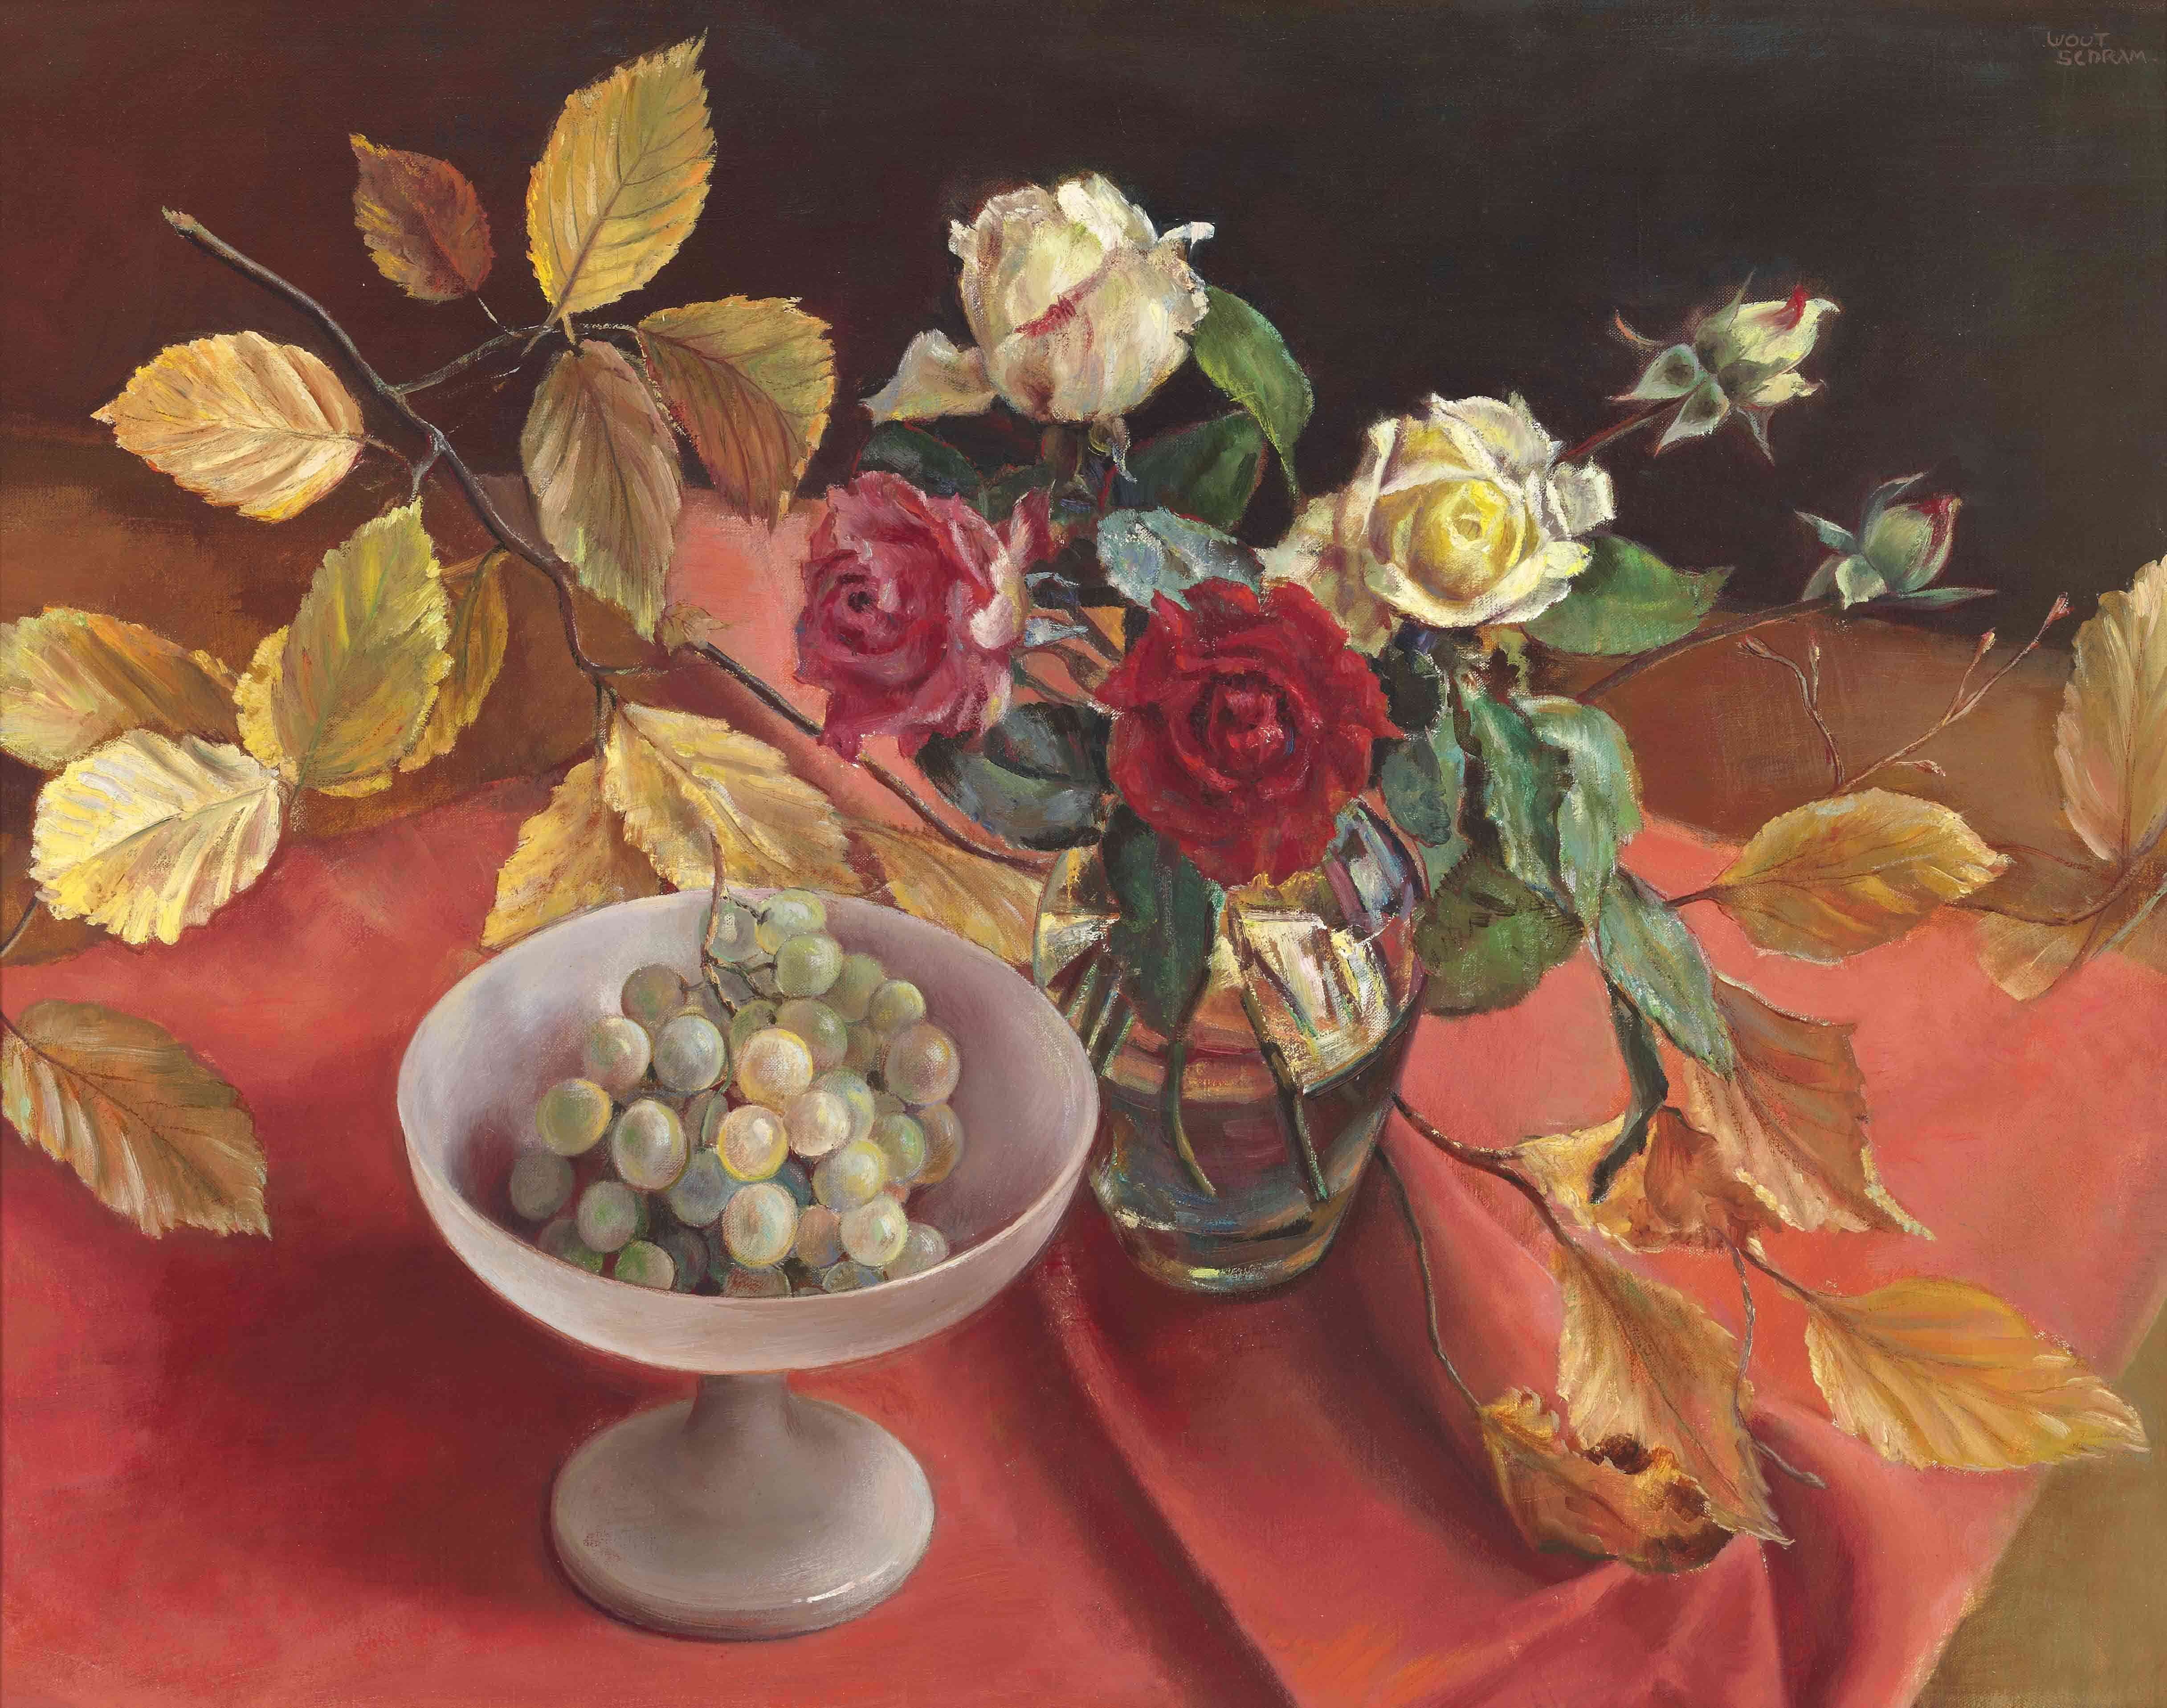 Stilleven Herfst of the Dining table